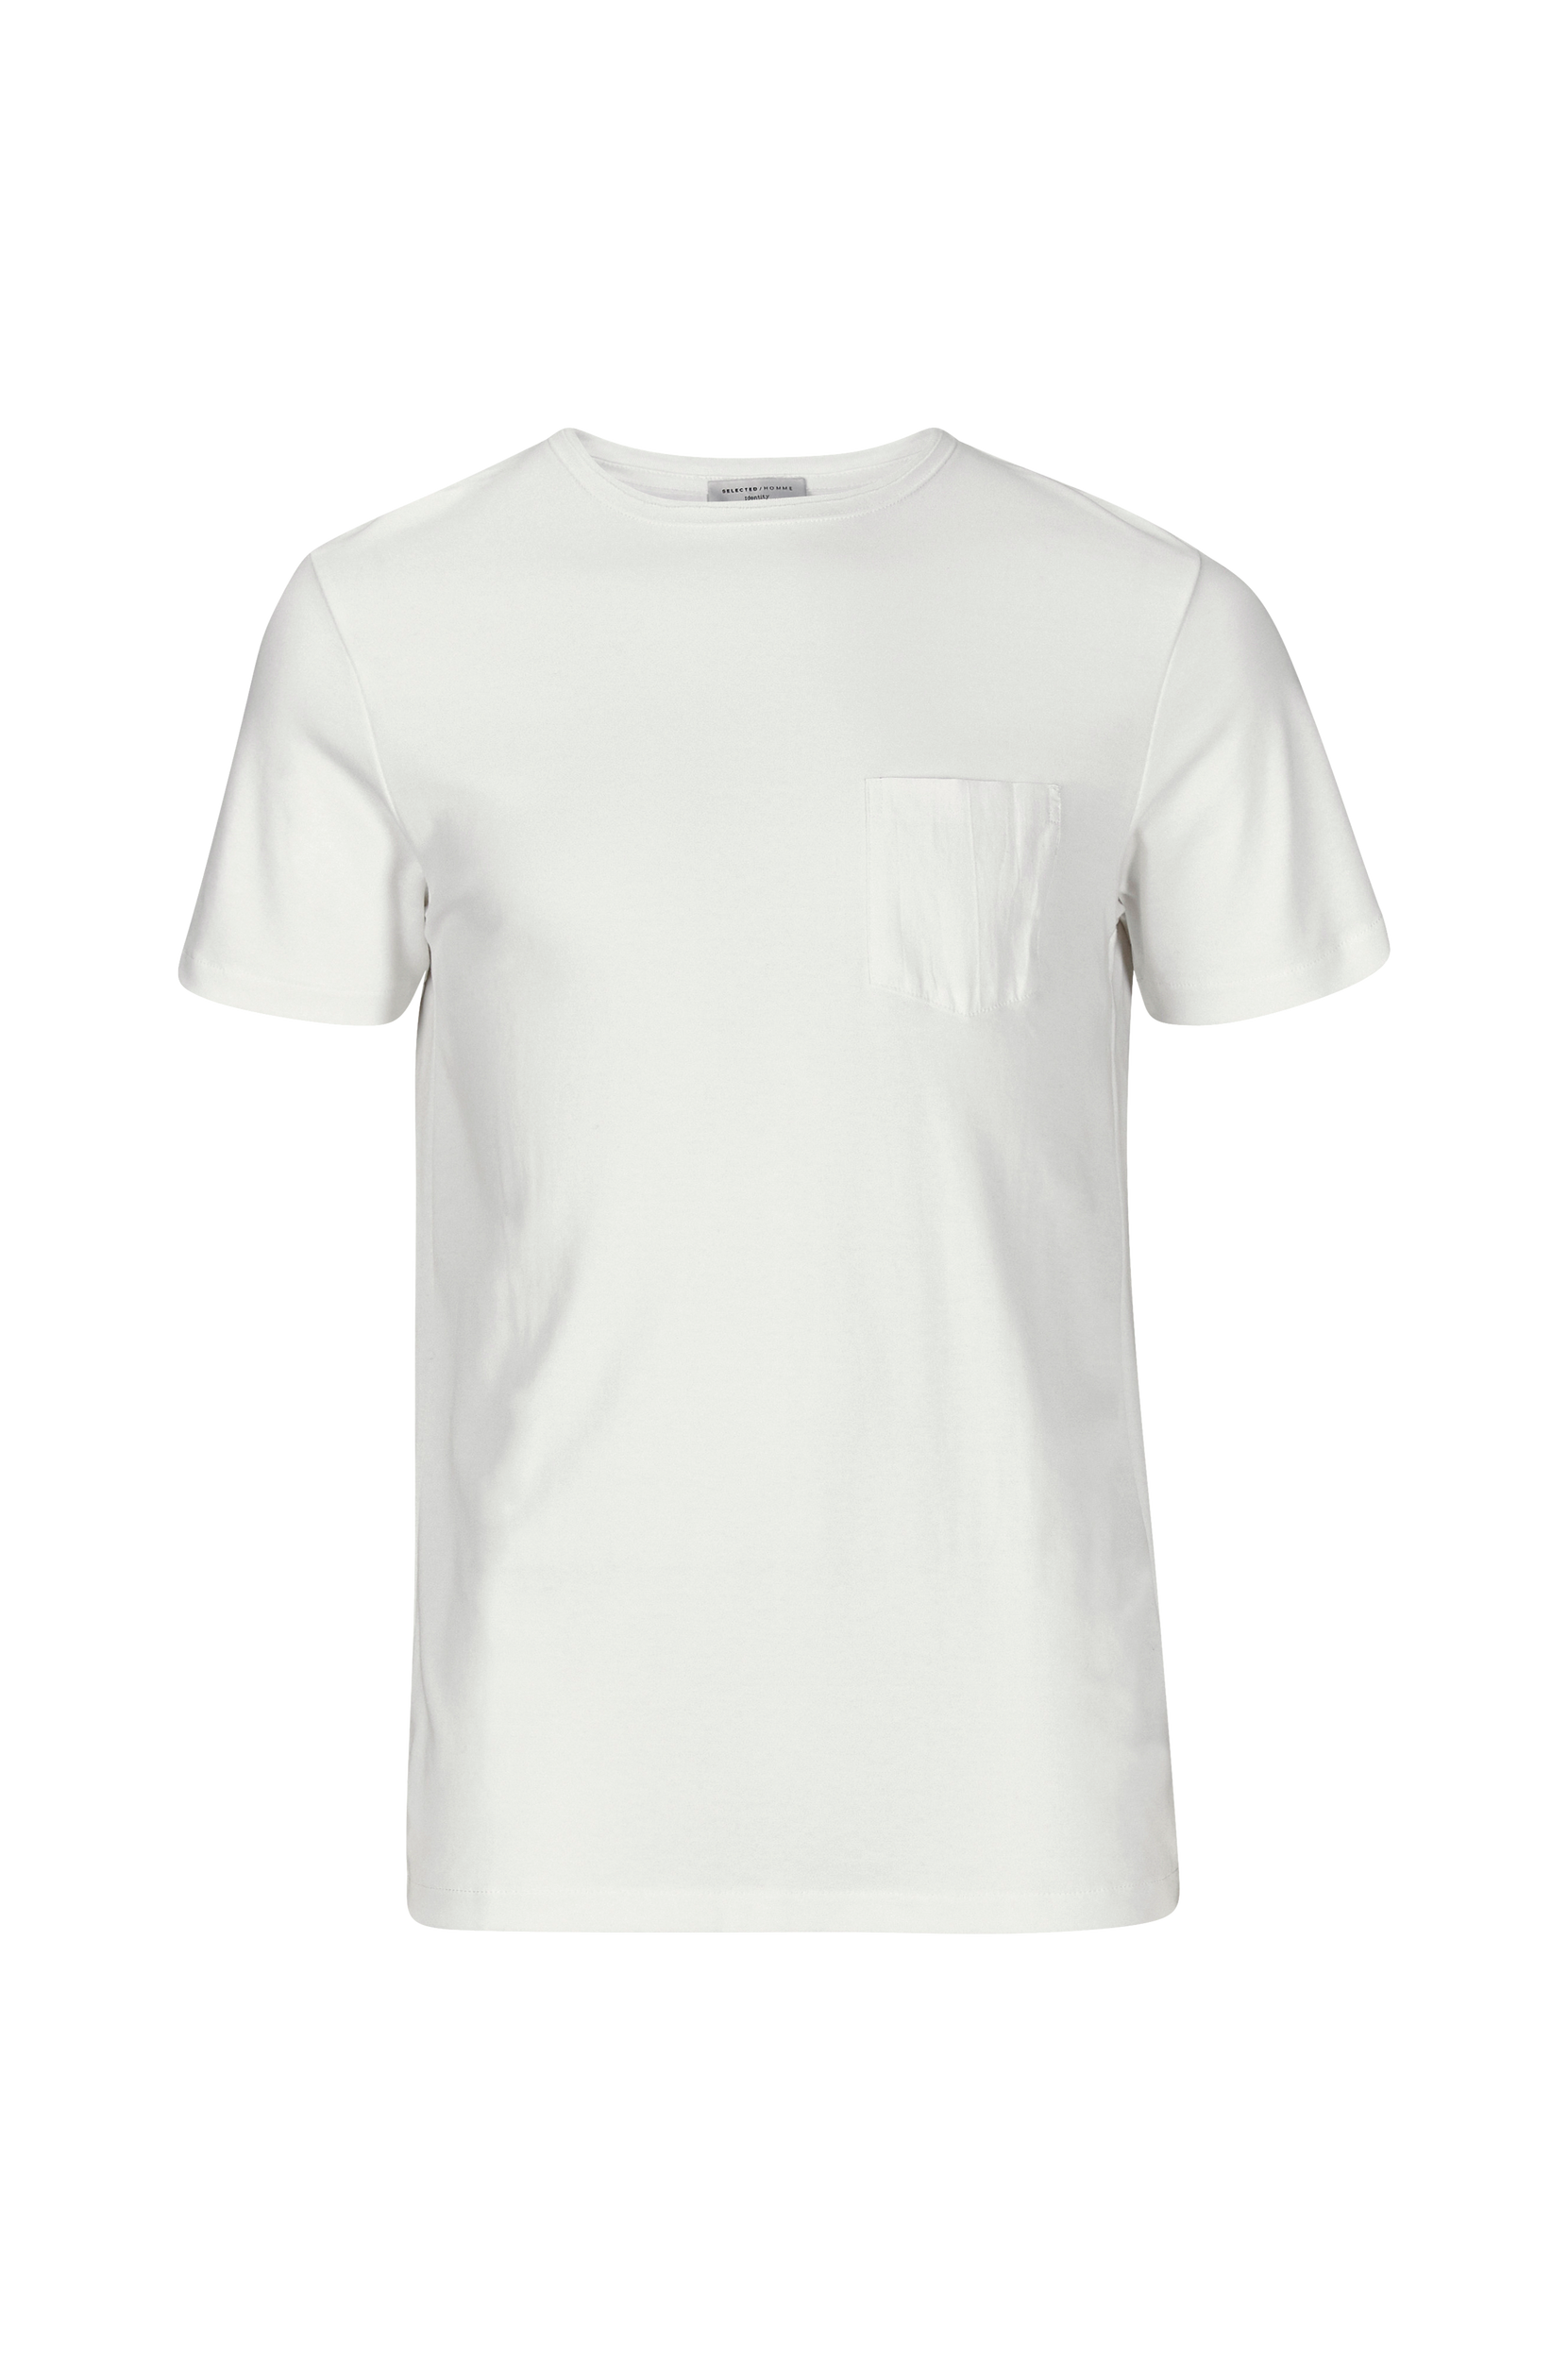 T-shirt shdFin Pocket SS O-neck Tee thumbnail